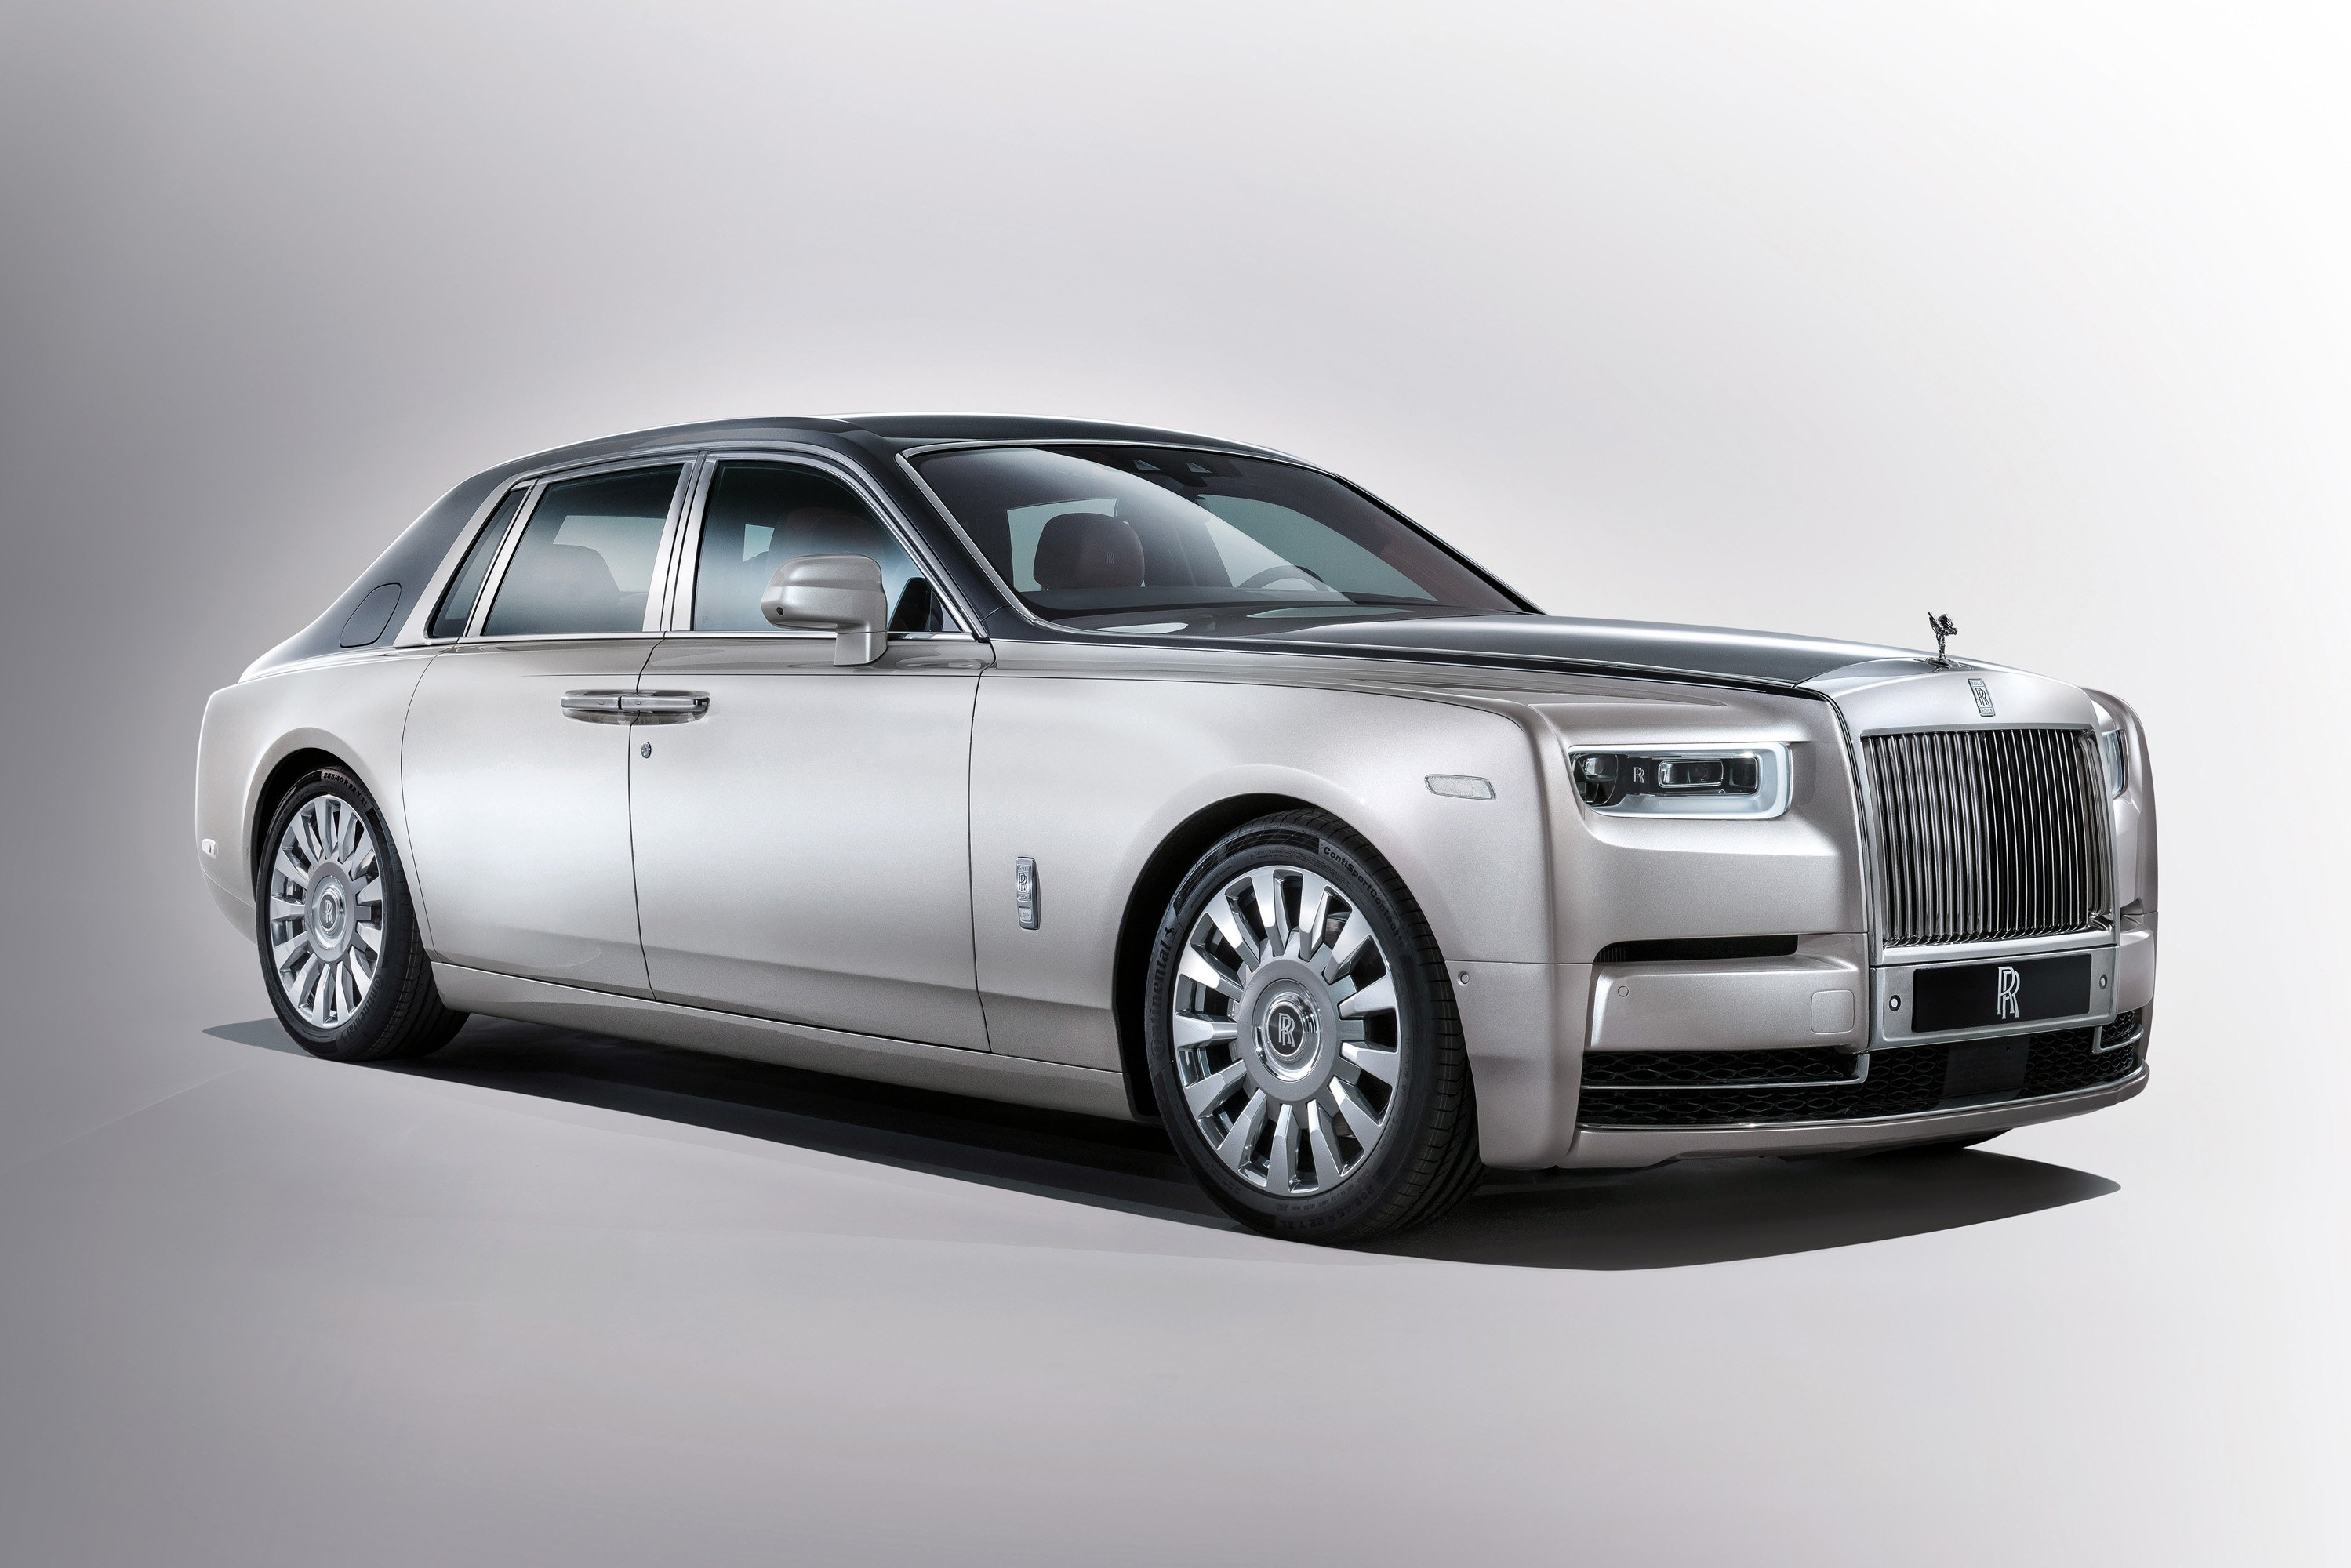 84 The 2020 Rolls Royce Phantoms Exterior and Interior